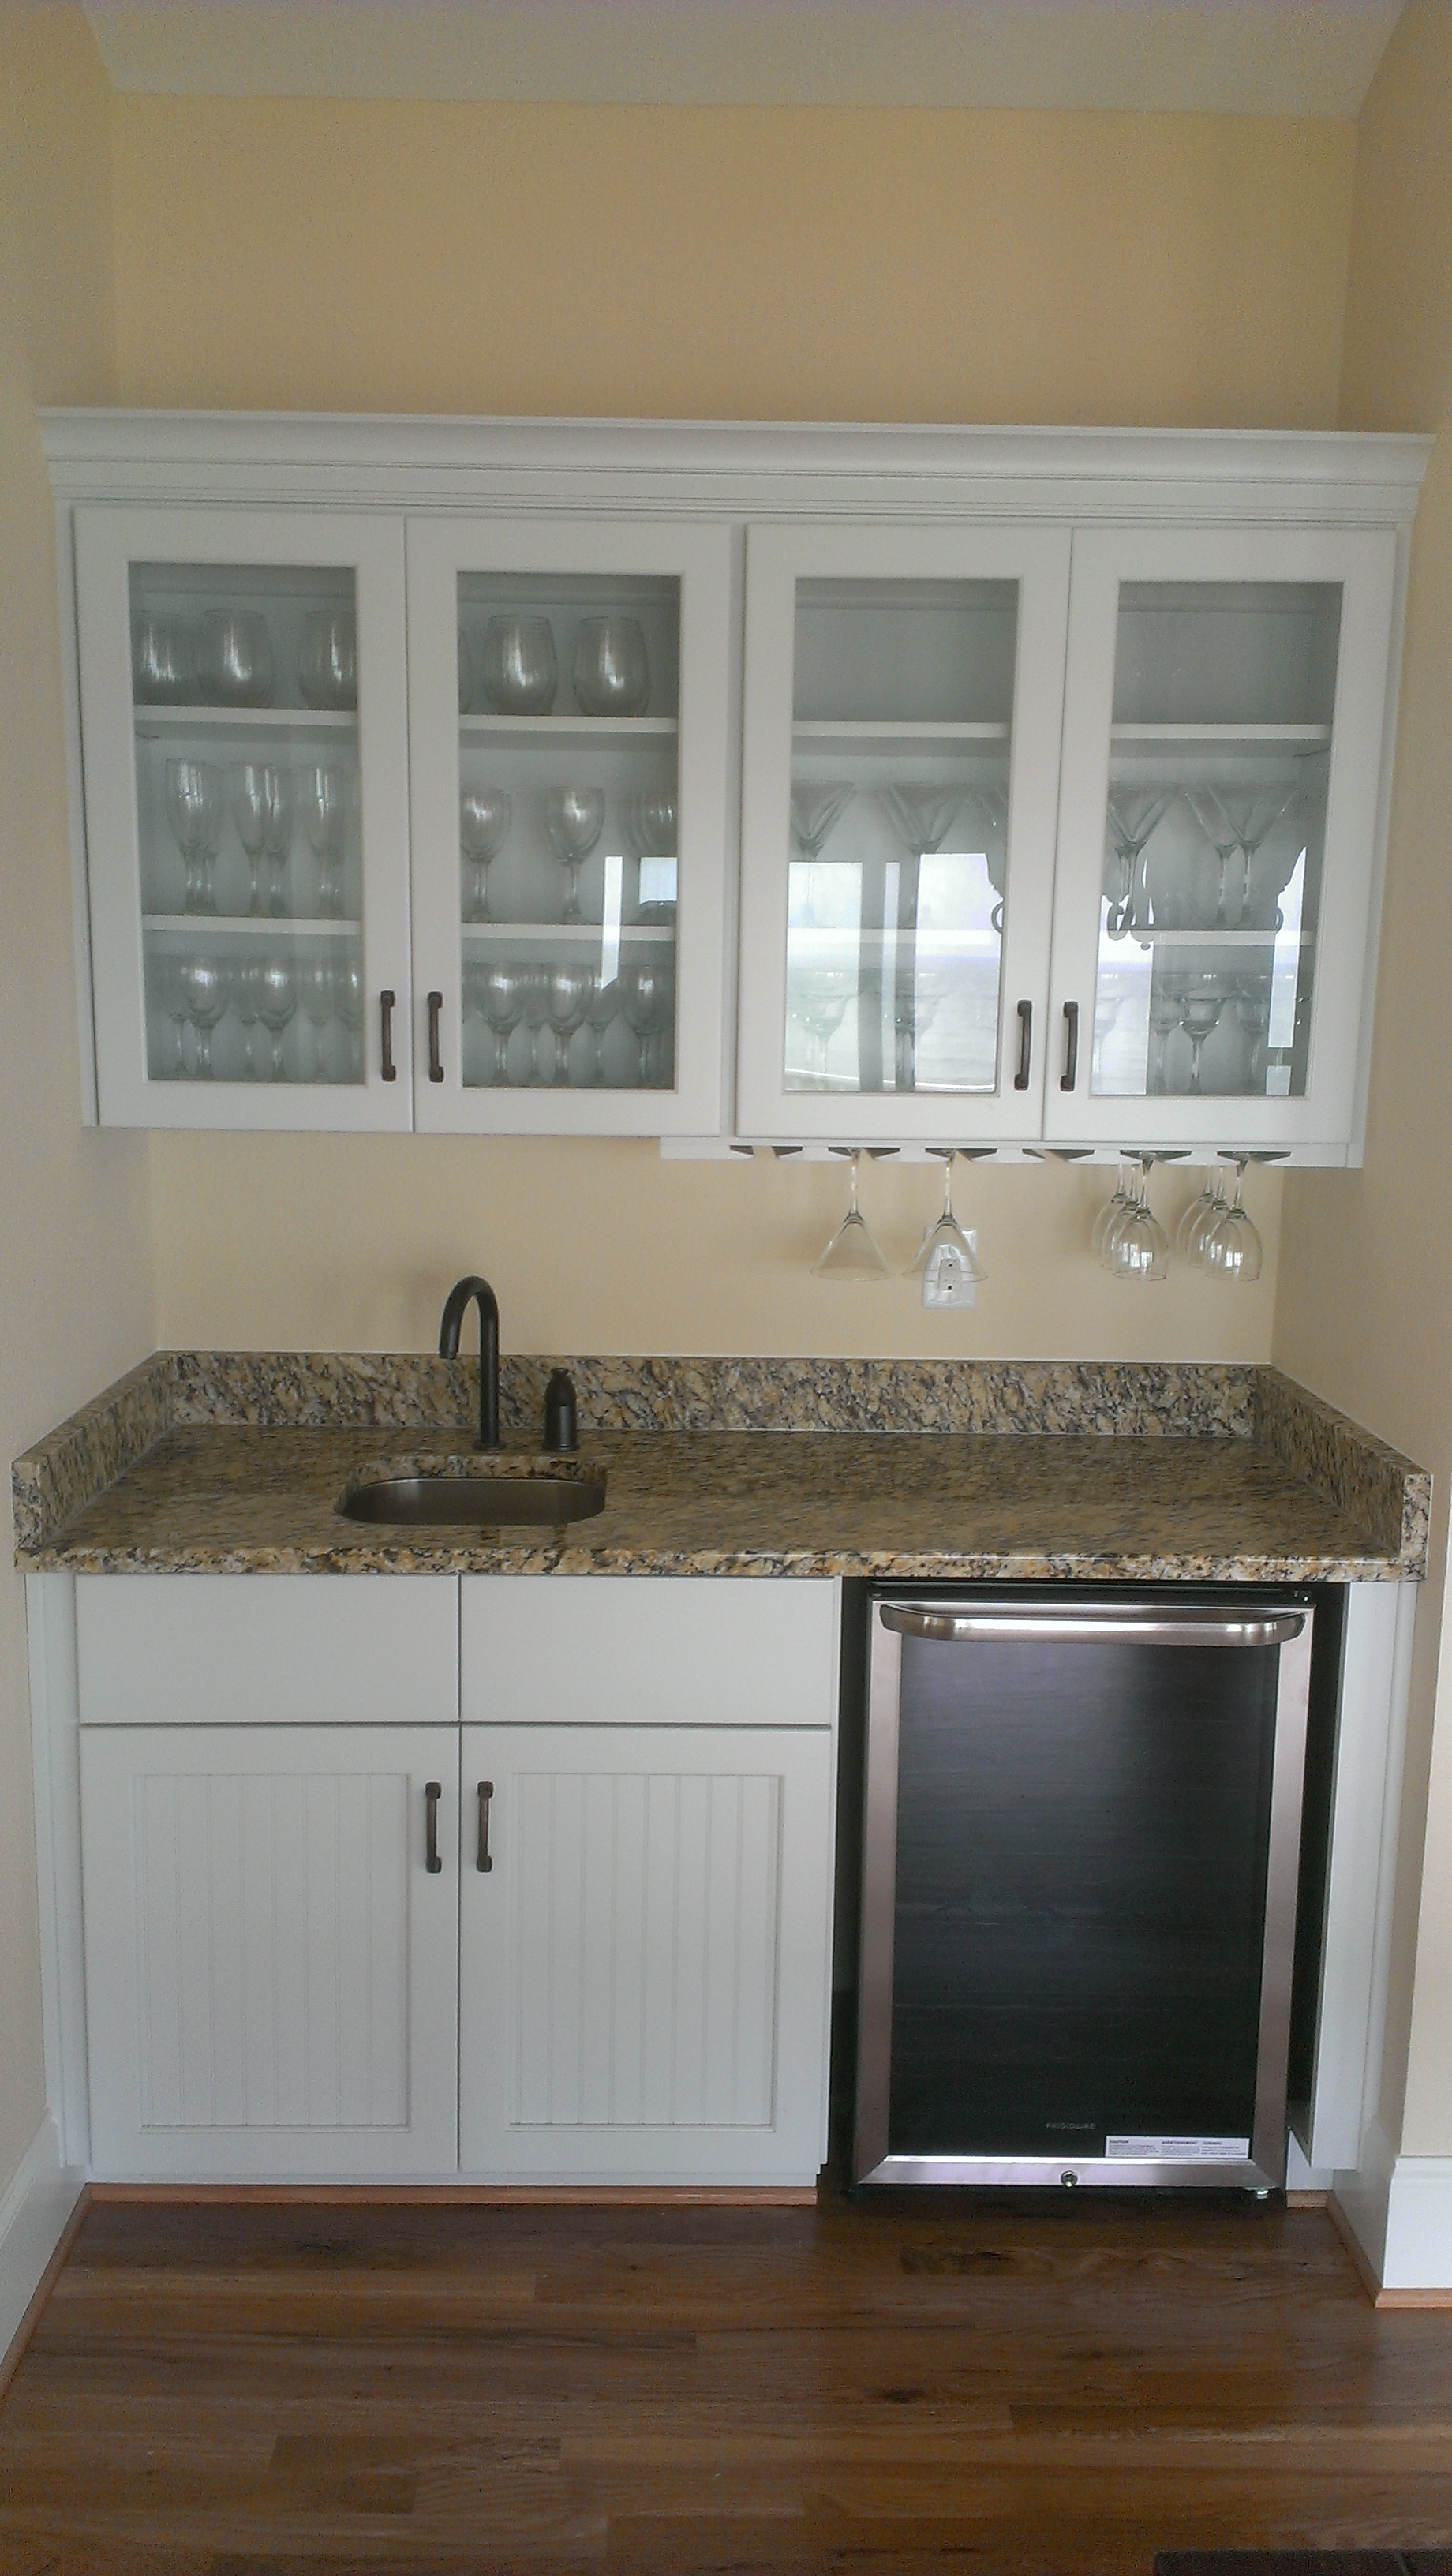 red line cabinetry - cabinetry - hagerstown kitchens remodeling